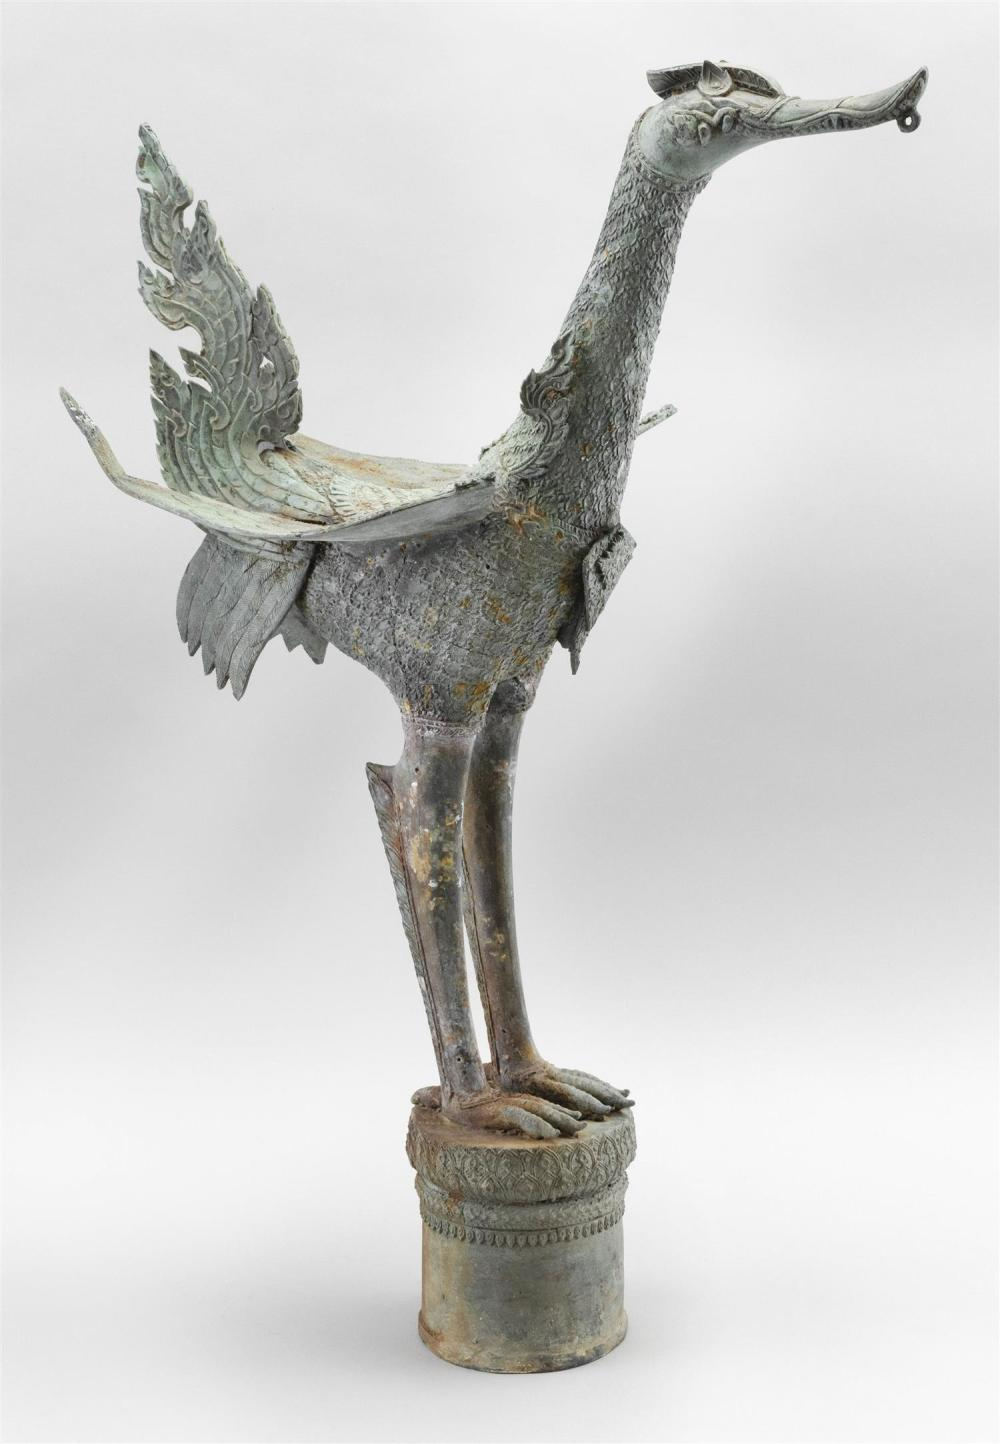 "THAI BRONZE FINIAL In the form of a bird standing on a rain drum. Height 22.75""."